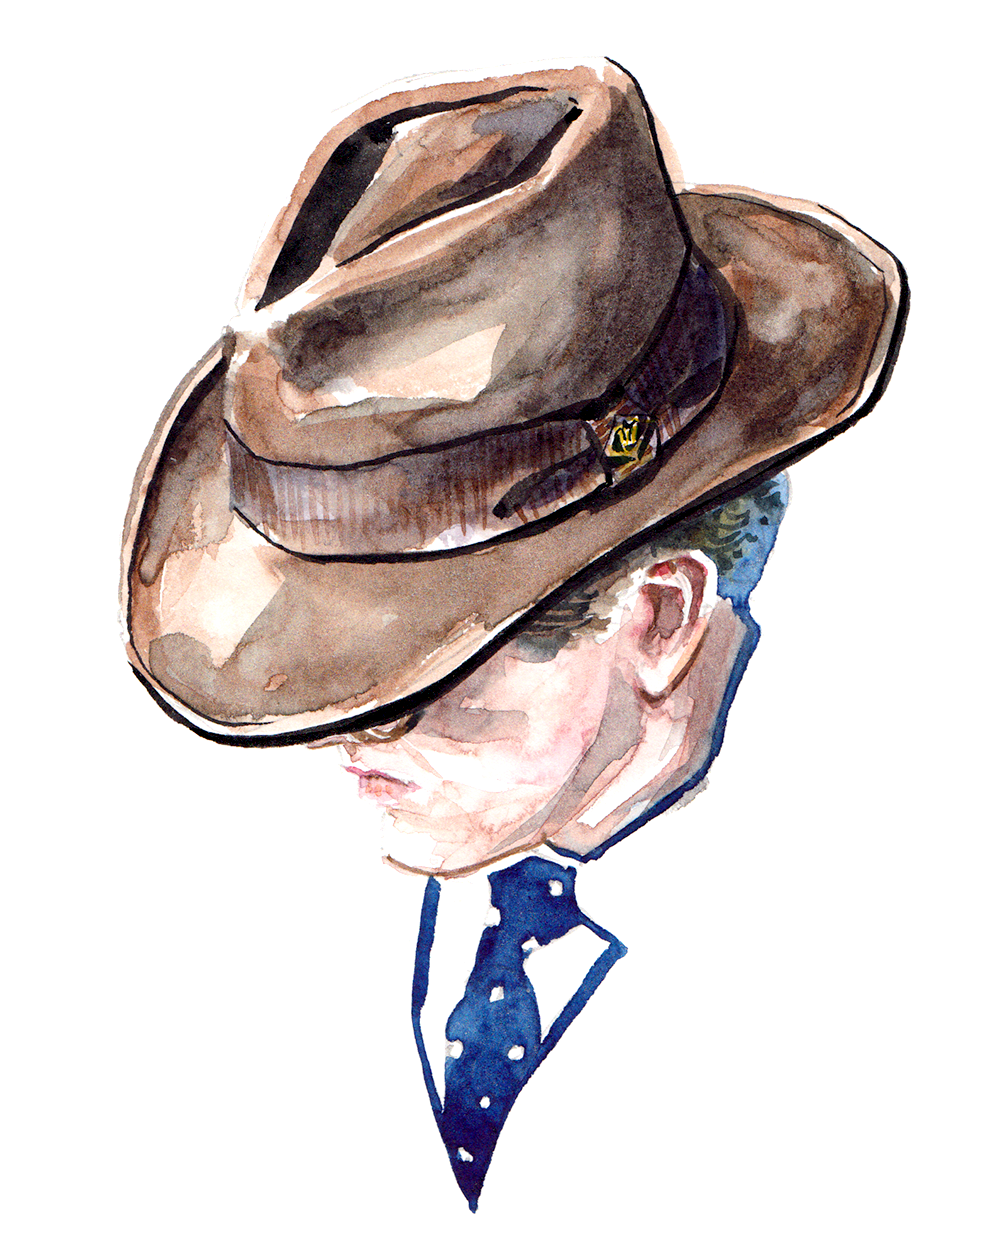 Goorin Bros fashion illustration